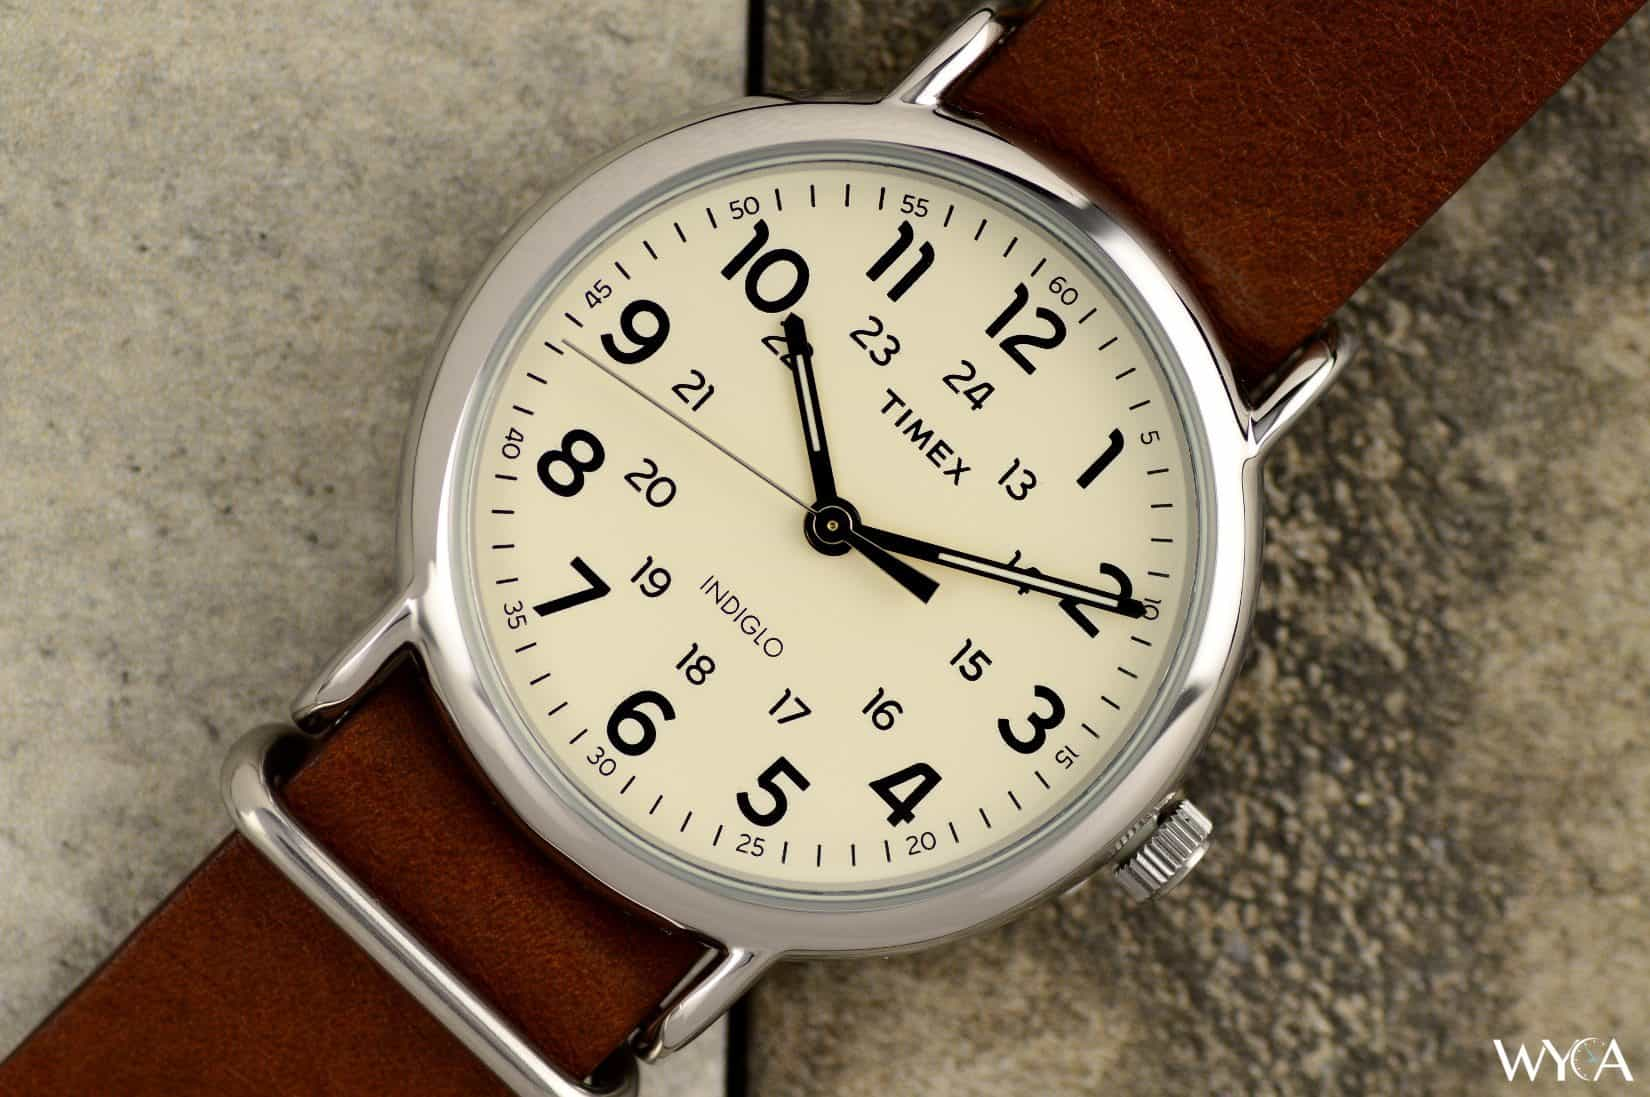 Timex: The Story & History Behind an American Watchmaking Icon